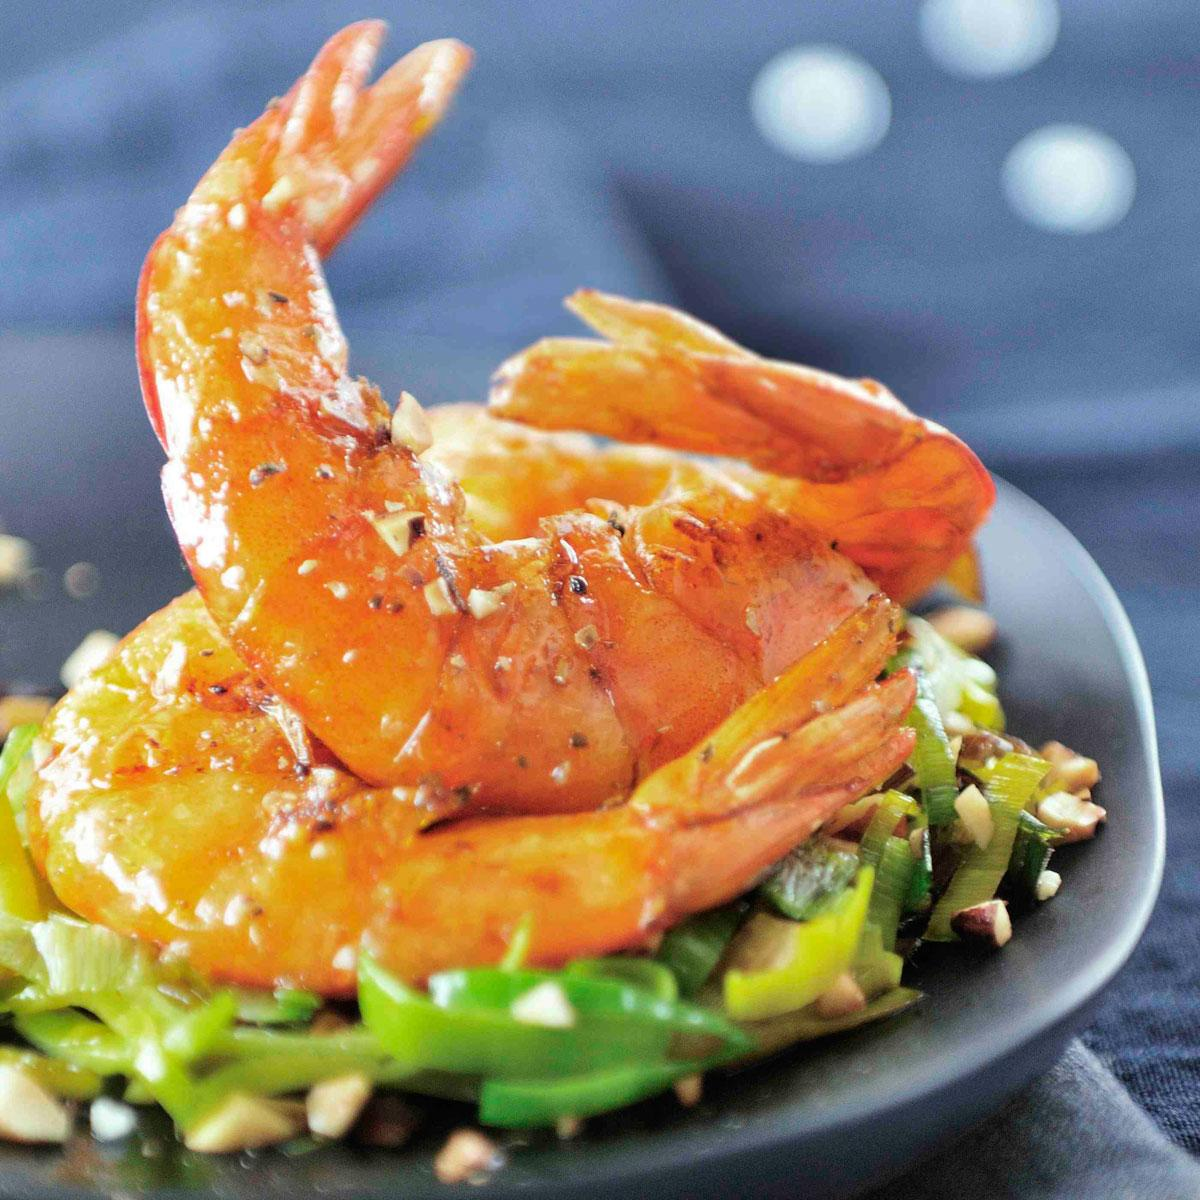 Recette gambas flamb es au cognac cuisine madame figaro - Accompagnement gambas grillees ...